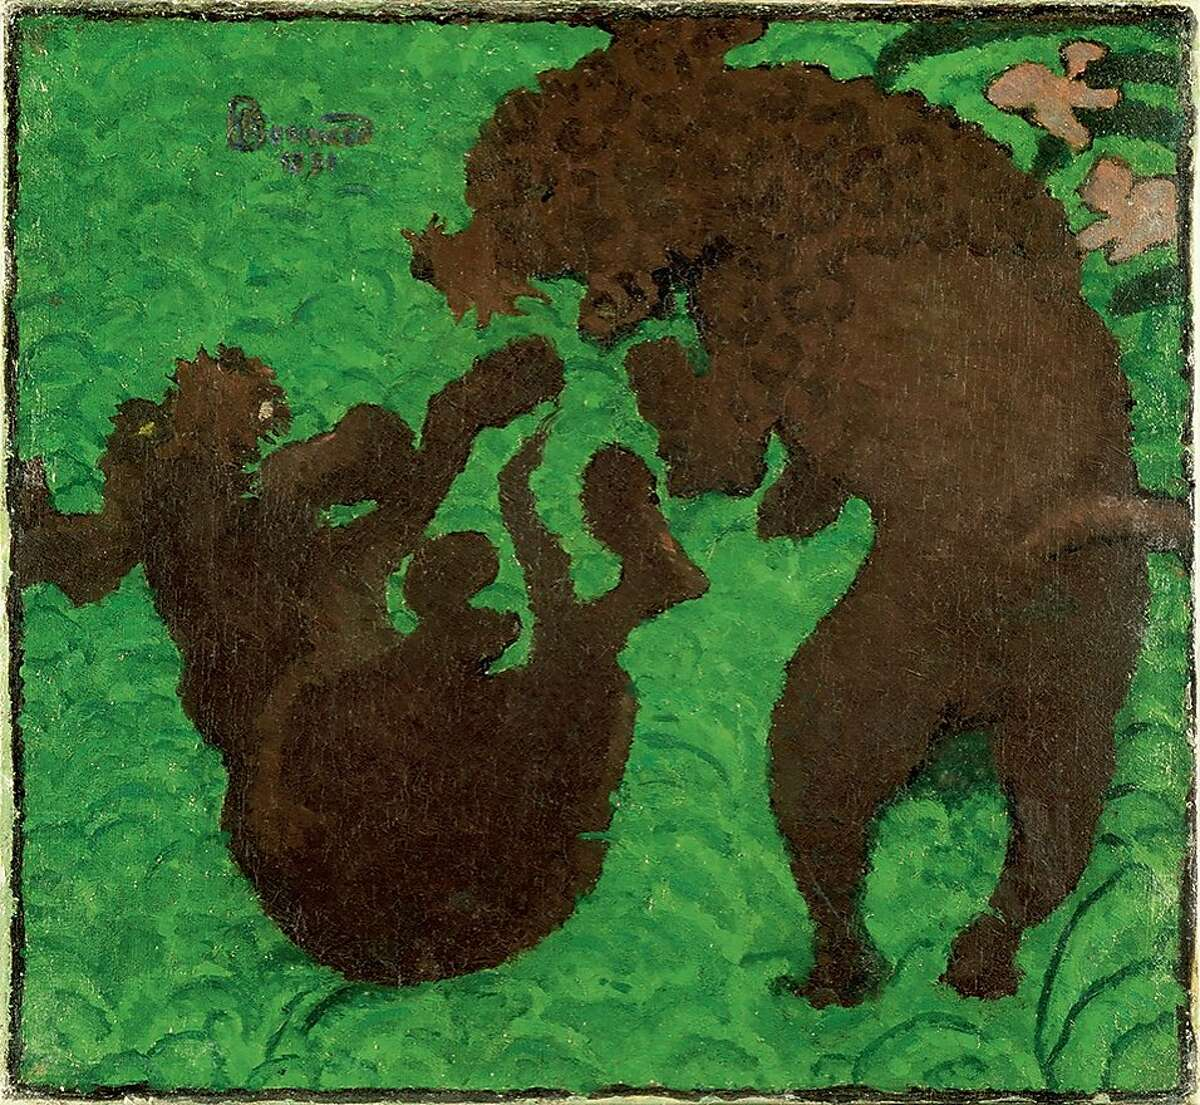 2.Pierre Bonnard, The Two Poodles, 1891. Oil on canvas, 14 5/8 x 15 5/8 in. (37 x 39.7 cm). Southampton City Art Gallery.